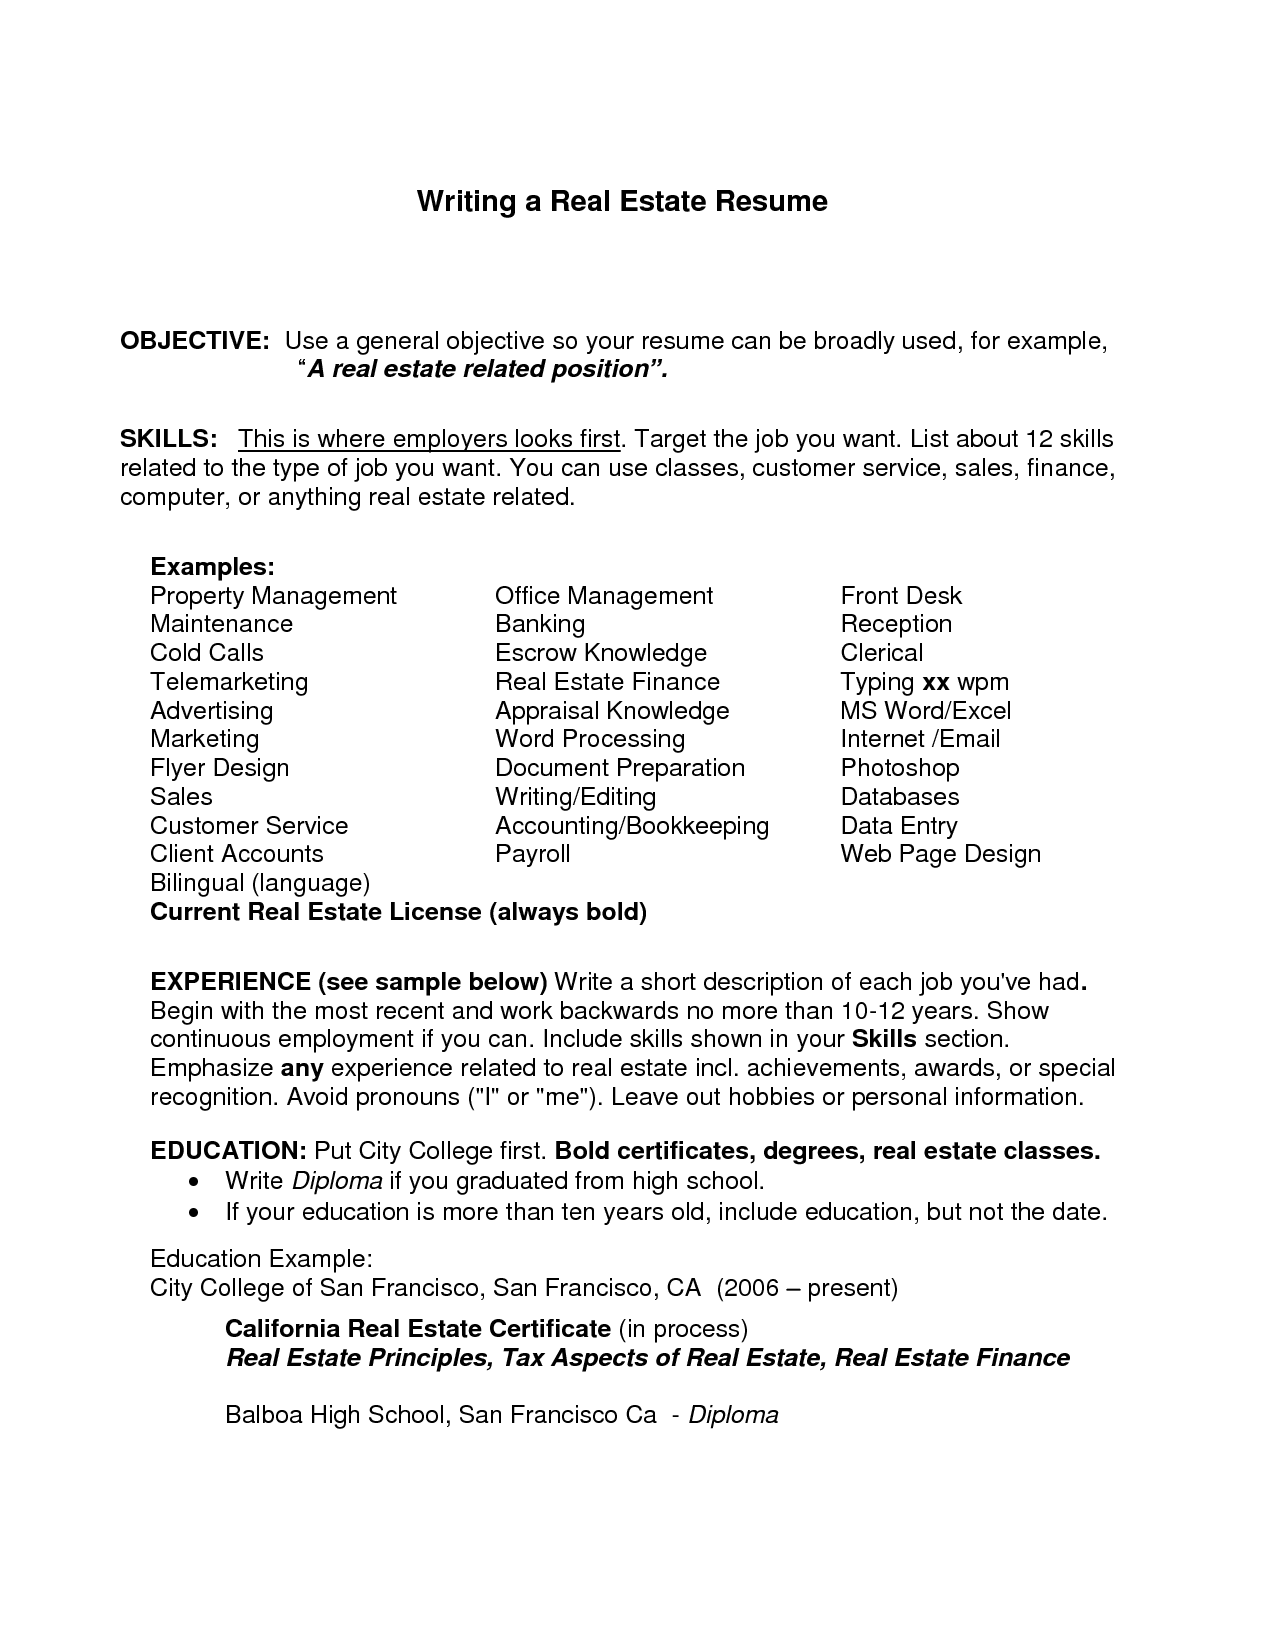 Writing A Resume Objective Sample   Http://www.resumecareer.info/writing A  Resume Objective Sample 14/